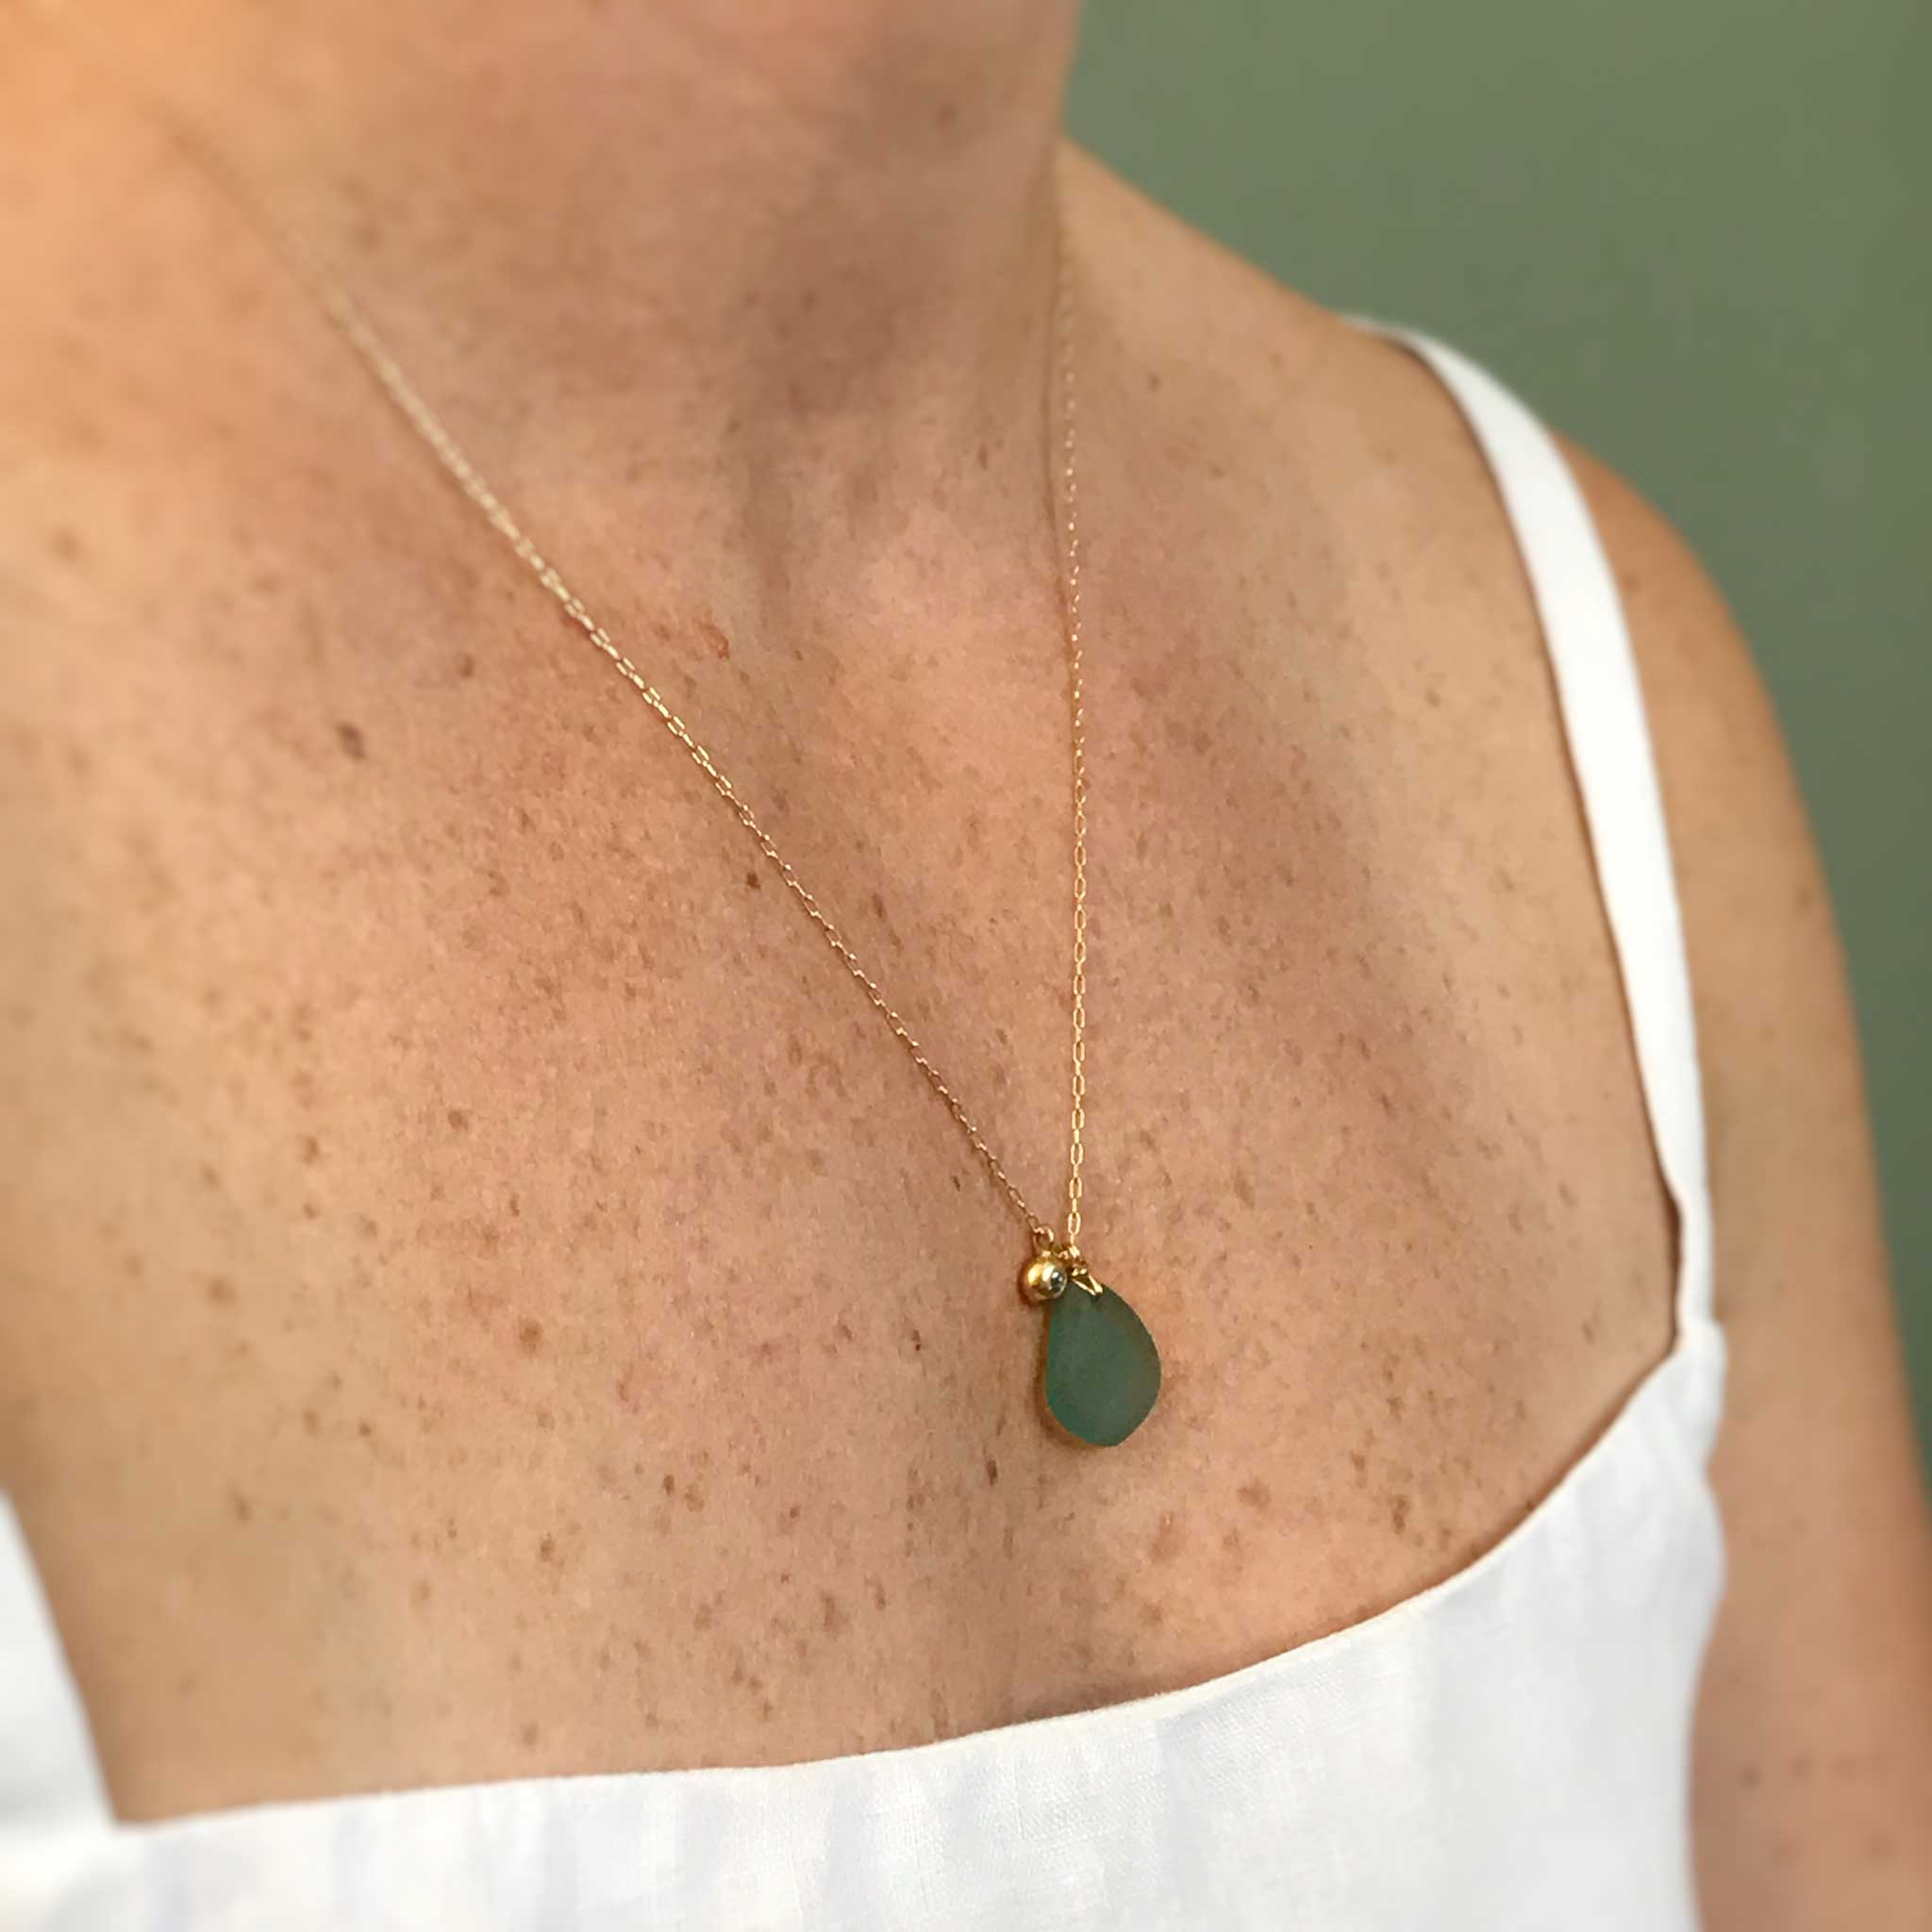 gift for wife aqua necklace with gold charm kriket broadhurst jewellery shop Sydney